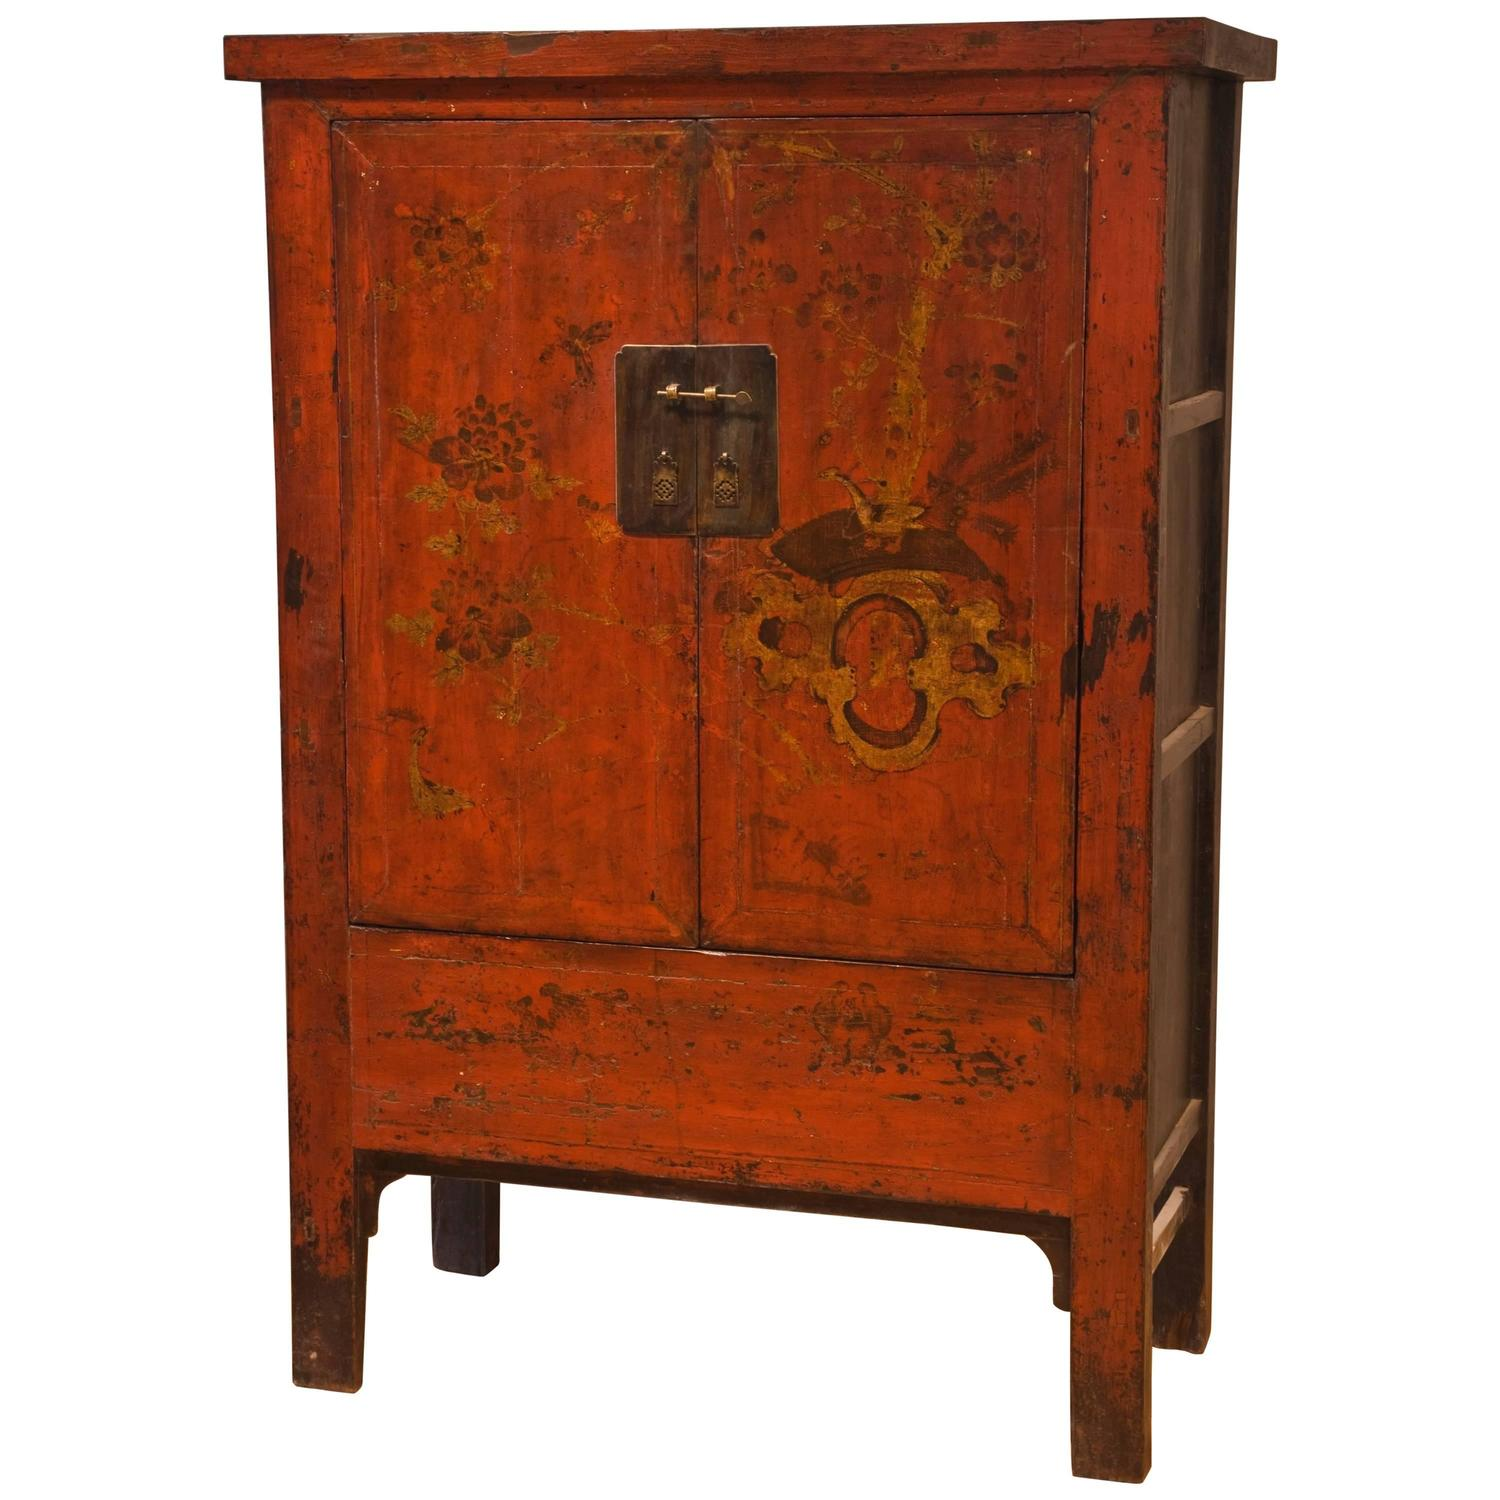 Antique Chinese Red Wedding Cabinet with Original Lacquer, Shanxi Province - Antique Asian Furniture - 1,874 For Sale At 1stdibs